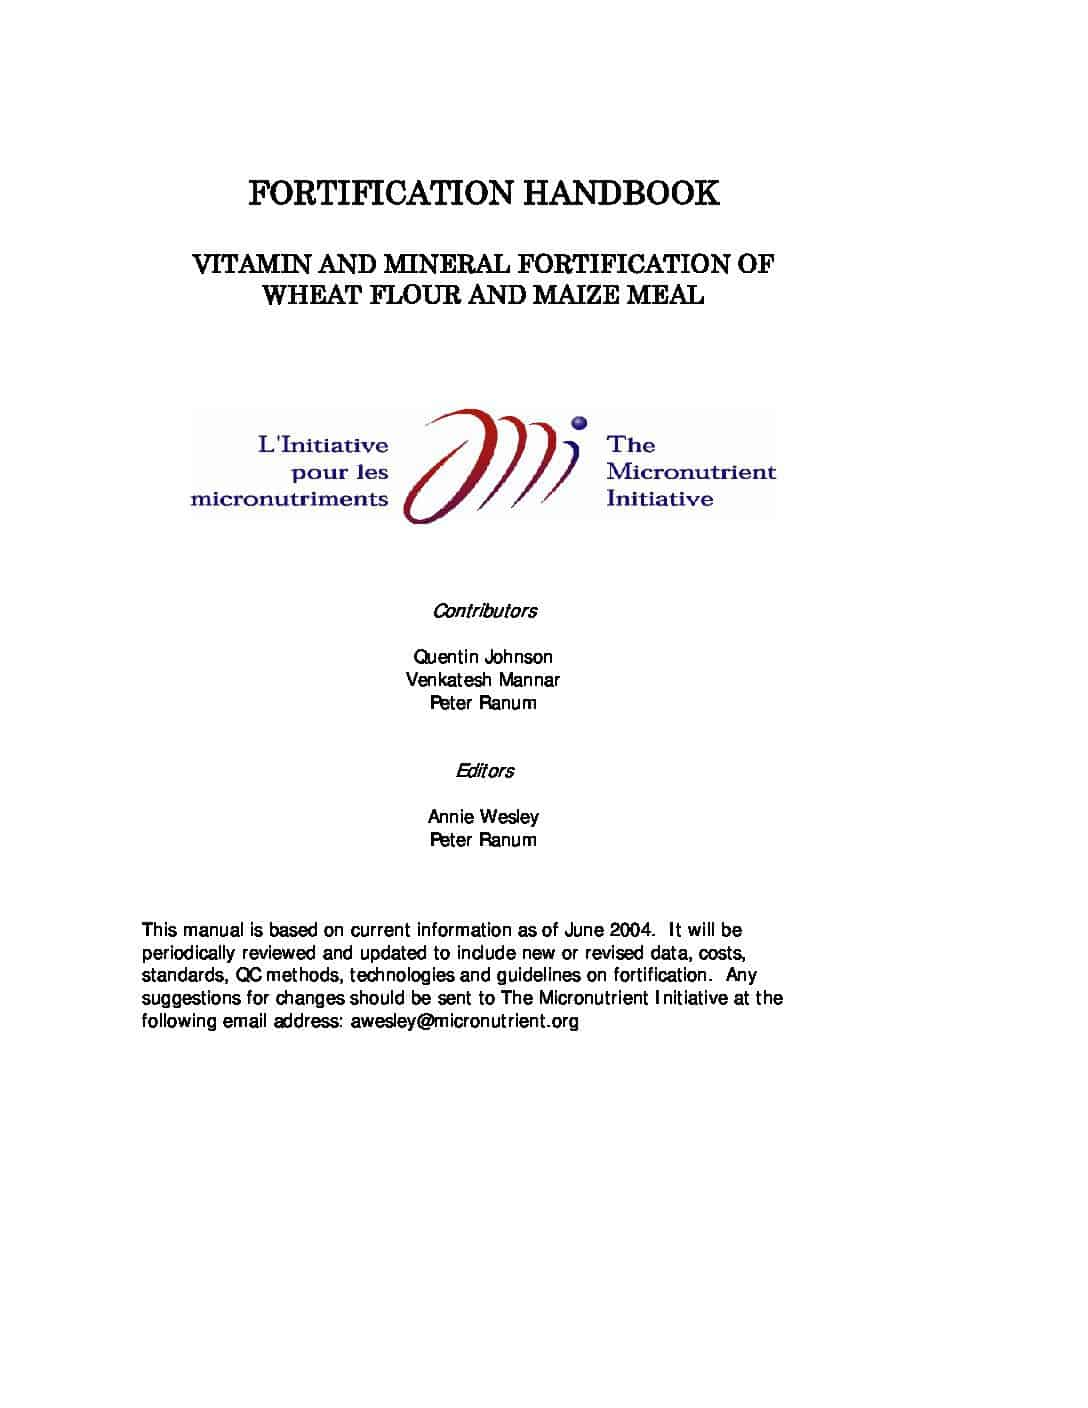 Fortification Handbook: Vitamin and Mineral Fortification of Wheat Flour and Maize Meal thumbnail